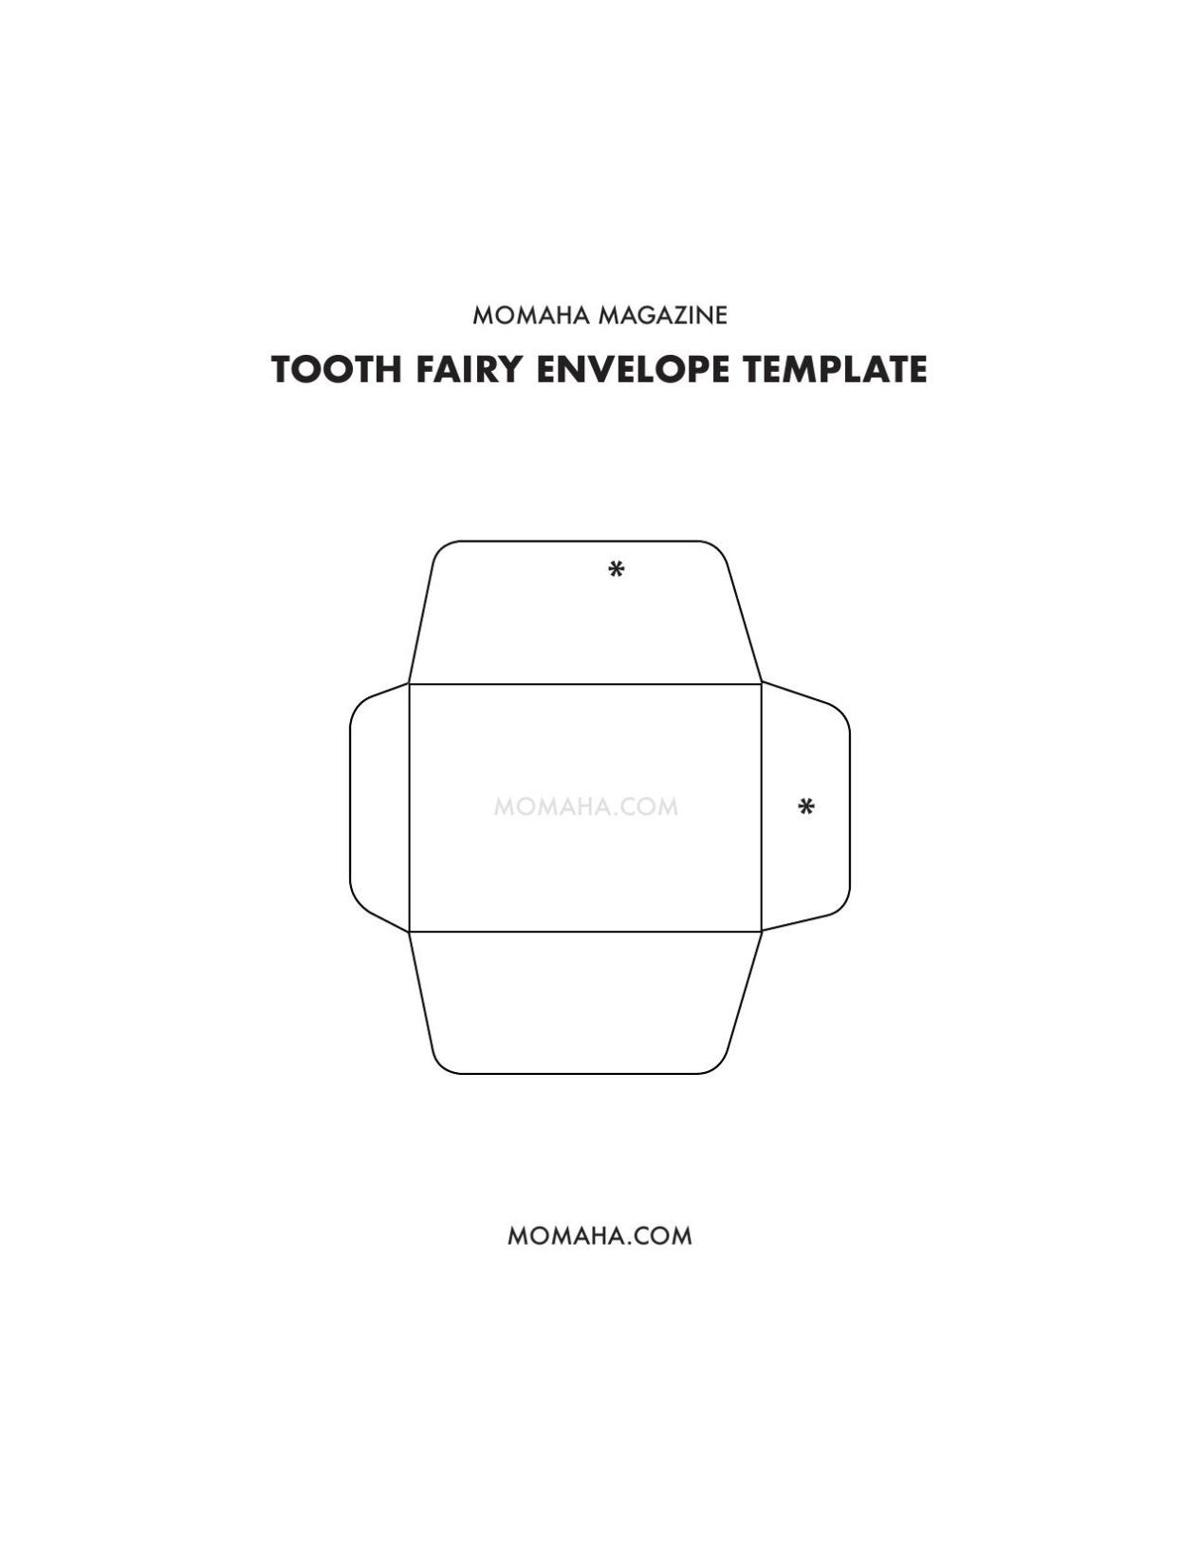 Envelope Template | Tooth Fairy Envelope Template Omaha Com